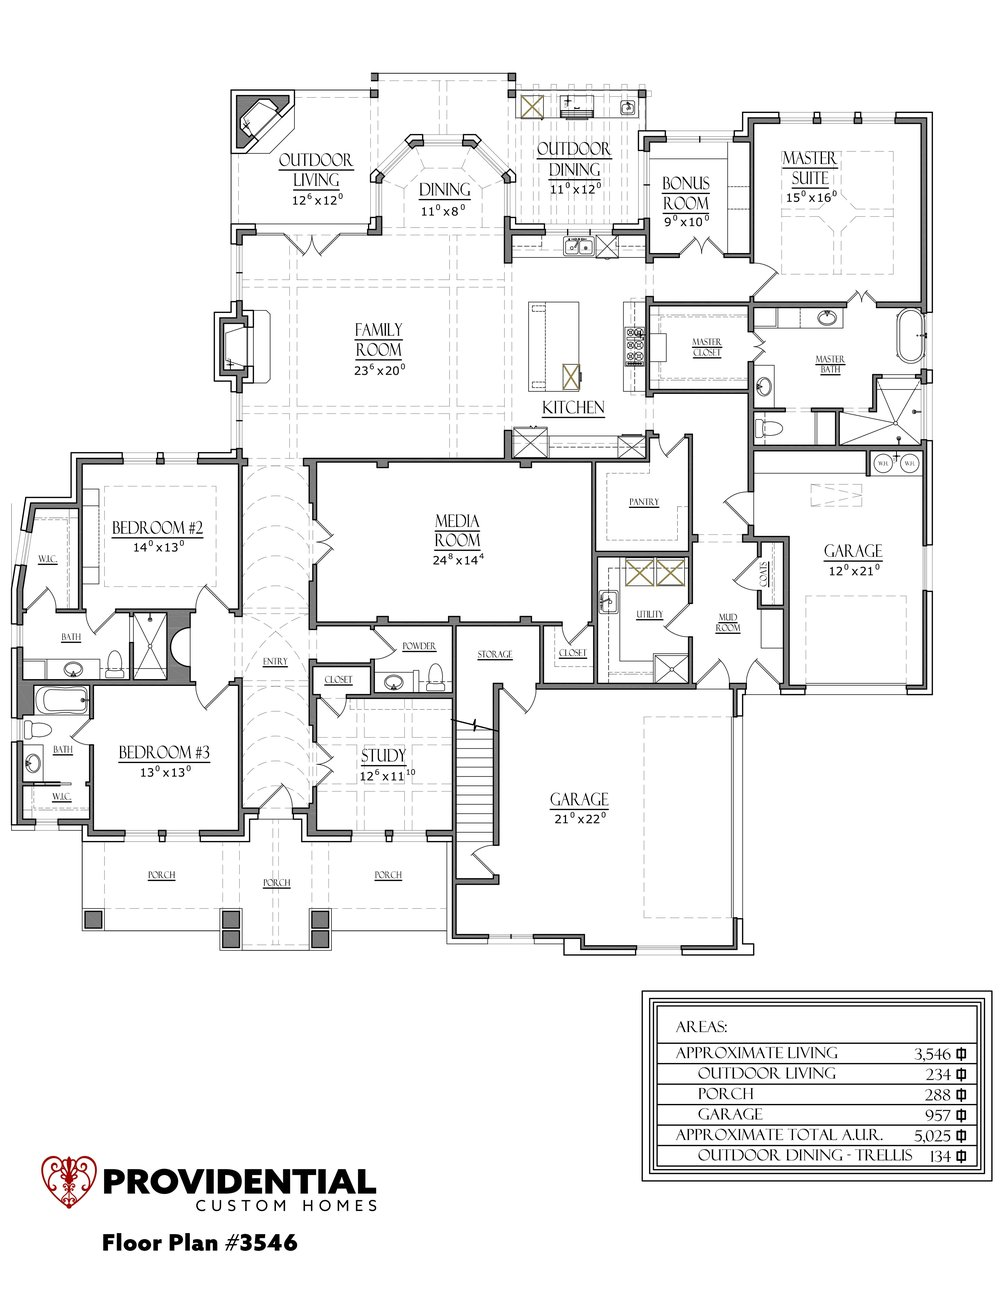 The FLOOR PLAN #3546.jpg